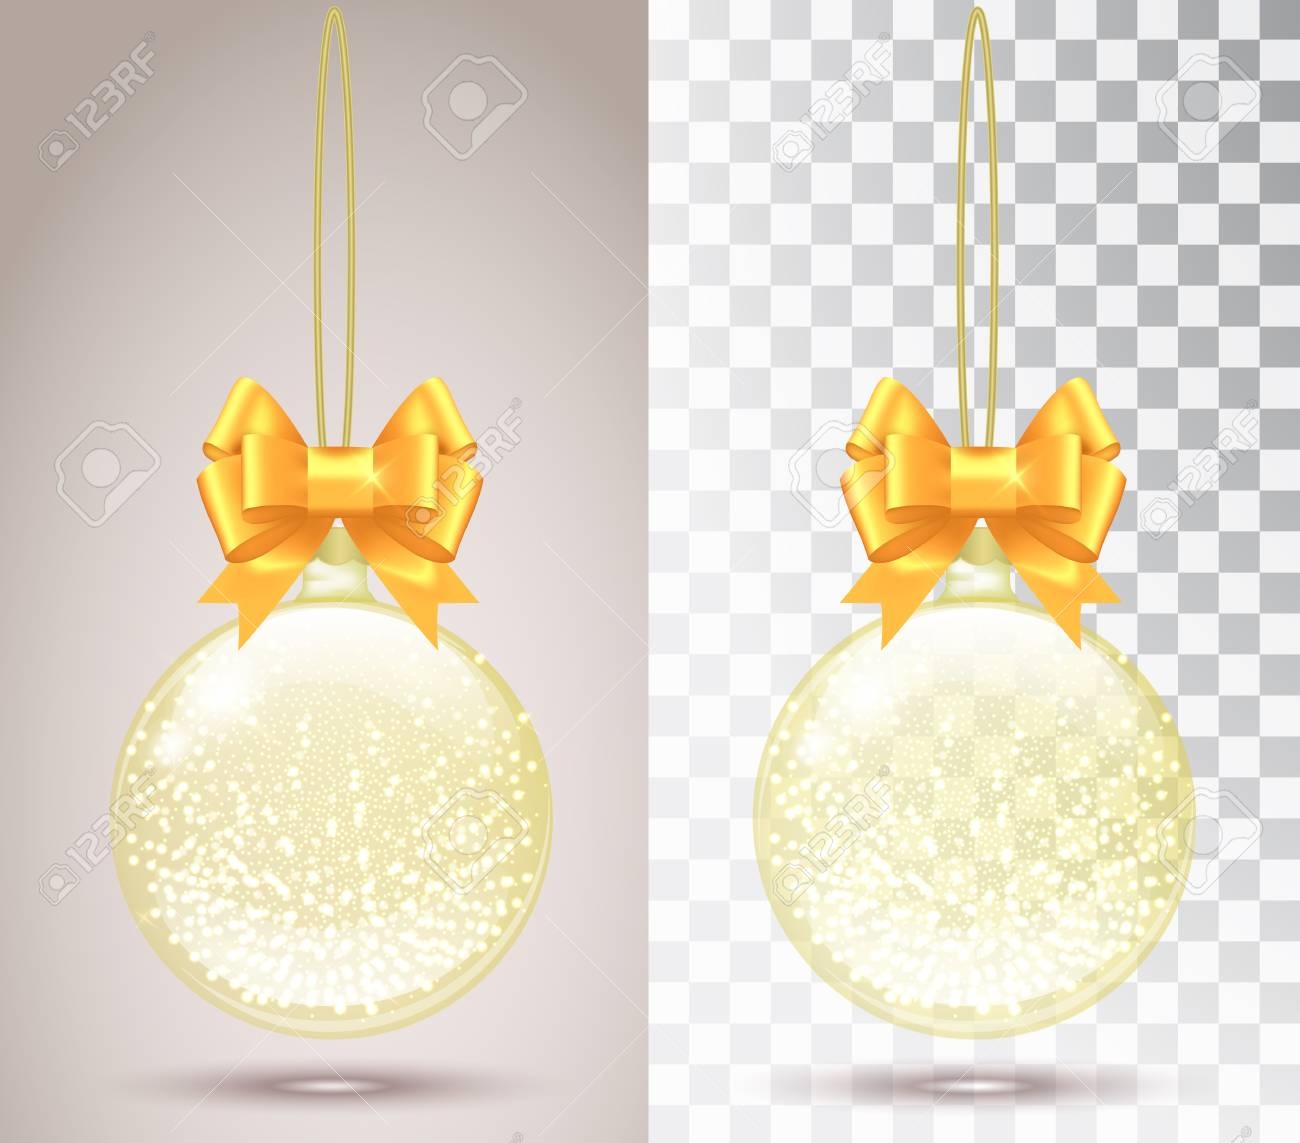 Glass Christmas Toy On A Transparent Background Stocking Decorations Shiny With Golden